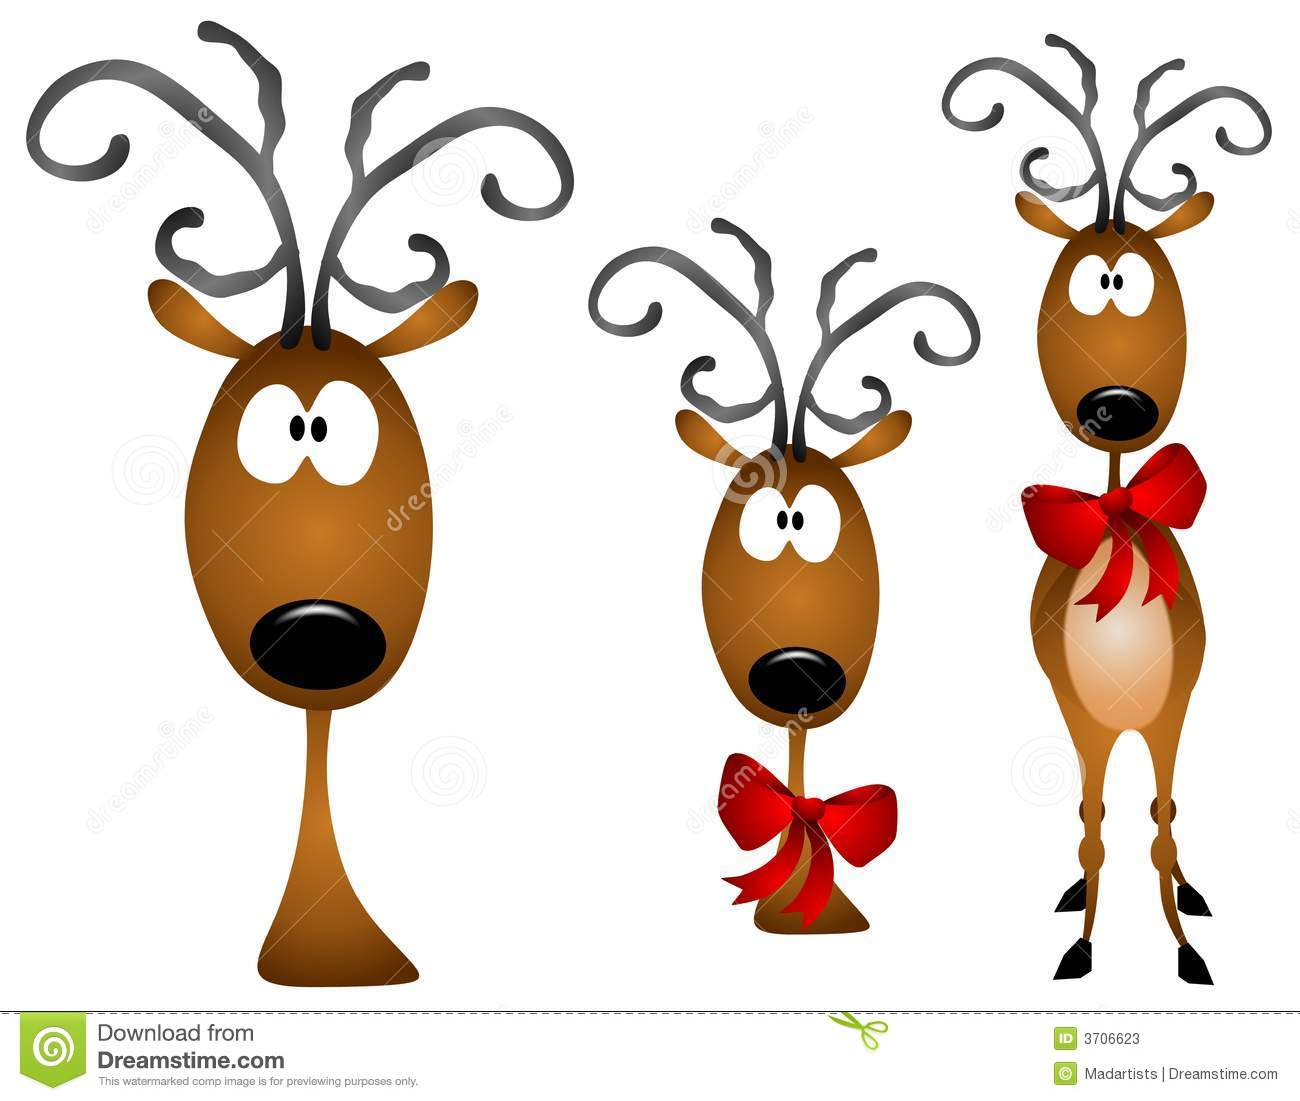 Clipart reindeer fun. Funny cliparts free download